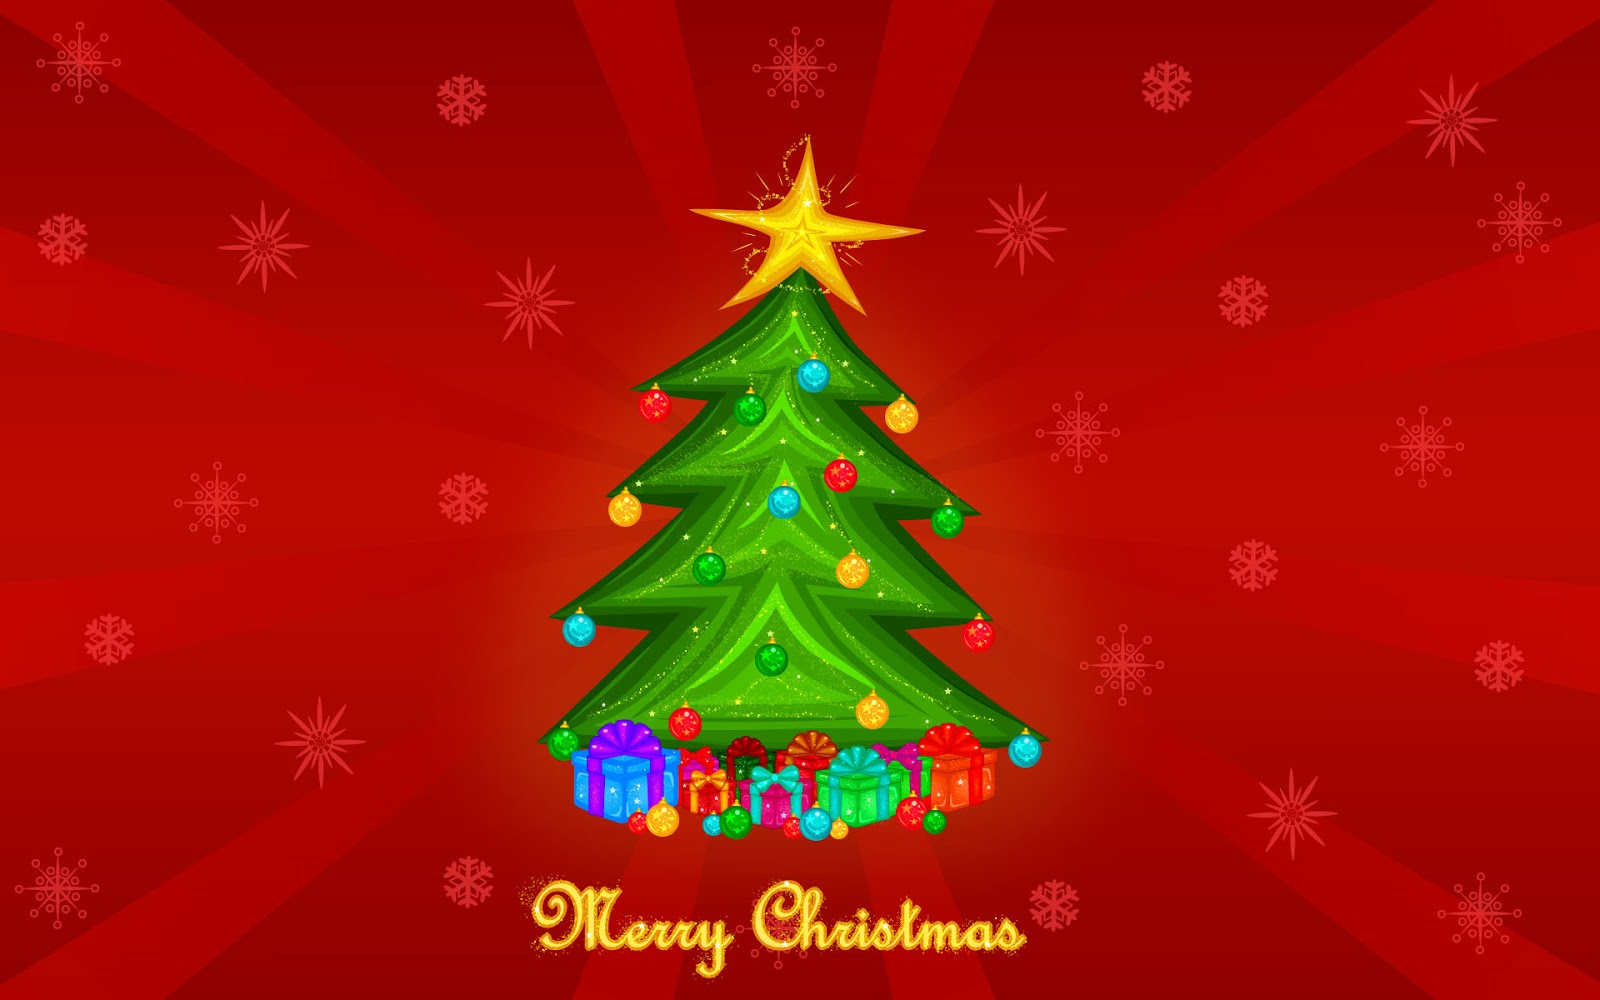 Beautiful Merry Christmas 2016 Xmas Tree Pictures Images Top